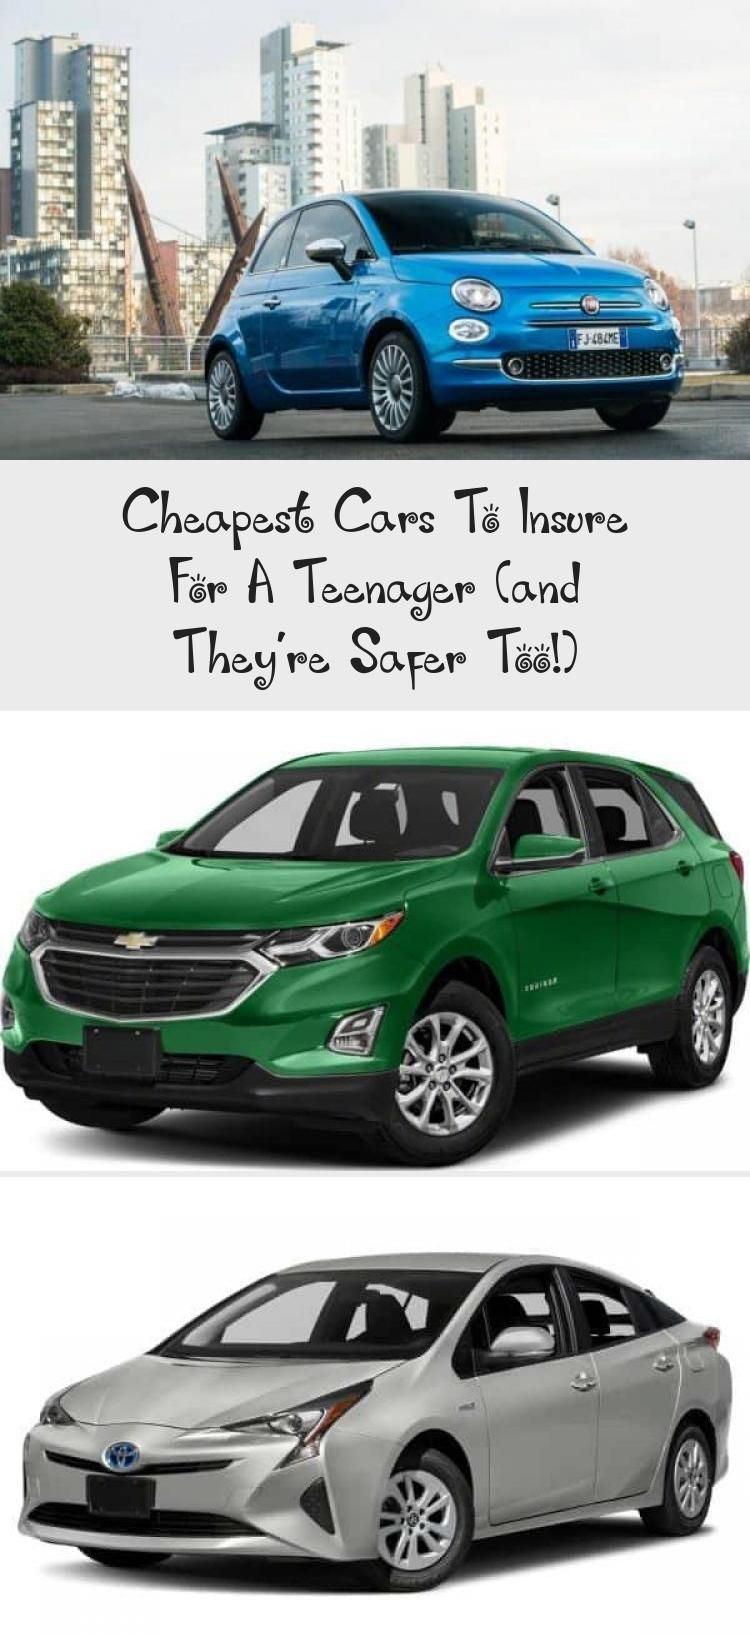 Cheapest Cars To Insure For A Teenager And They Re Safer Too In 2020 Cheap Cars Car Teenage Drivers